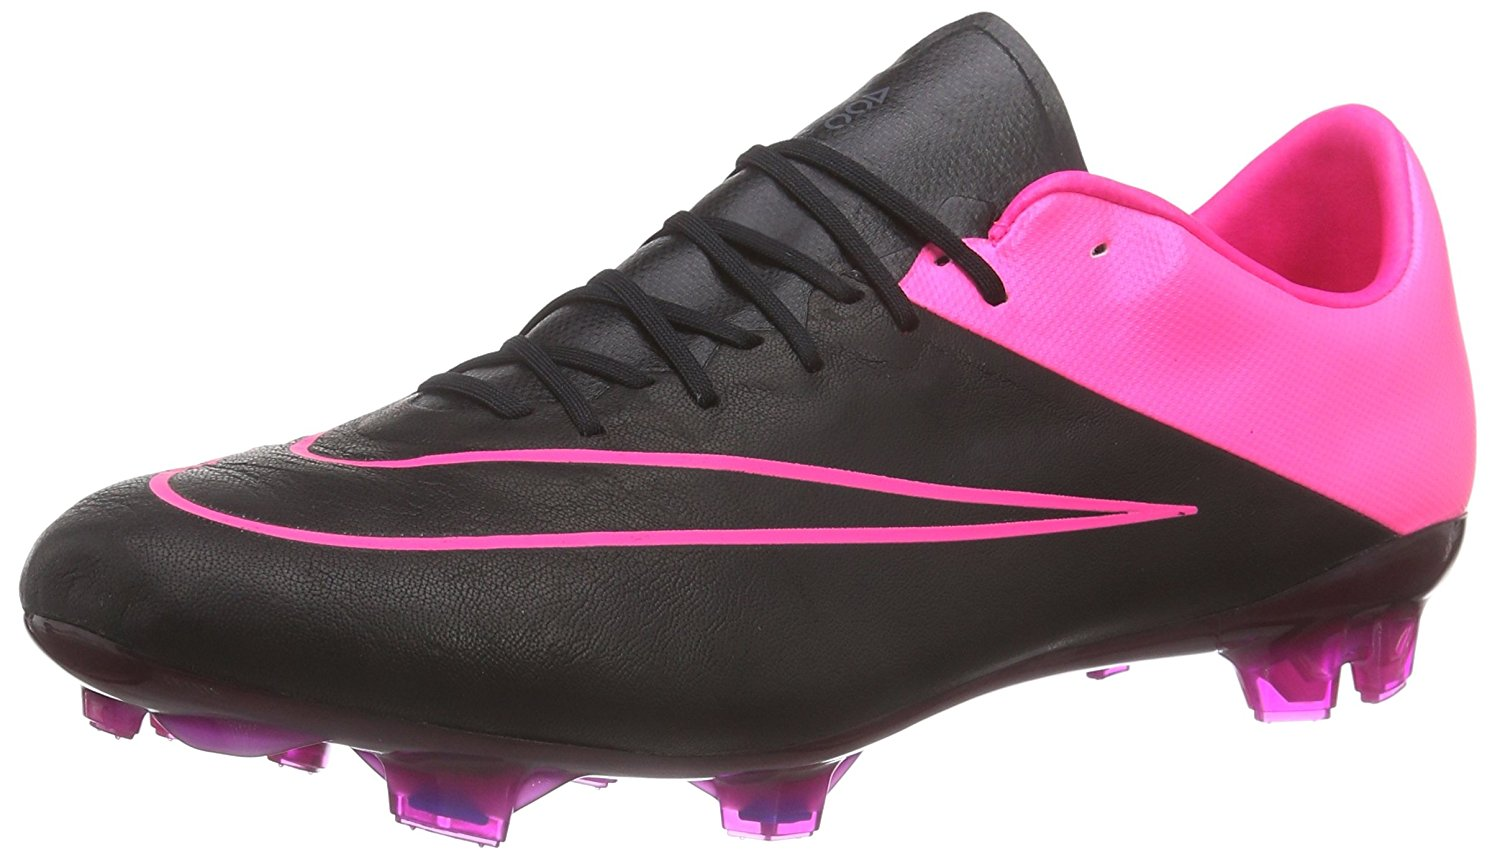 the latest a7805 a556b Get Quotations · Nike Mercurial Vapor X Leather FG Men s Firm-Ground Soccer  Cleat